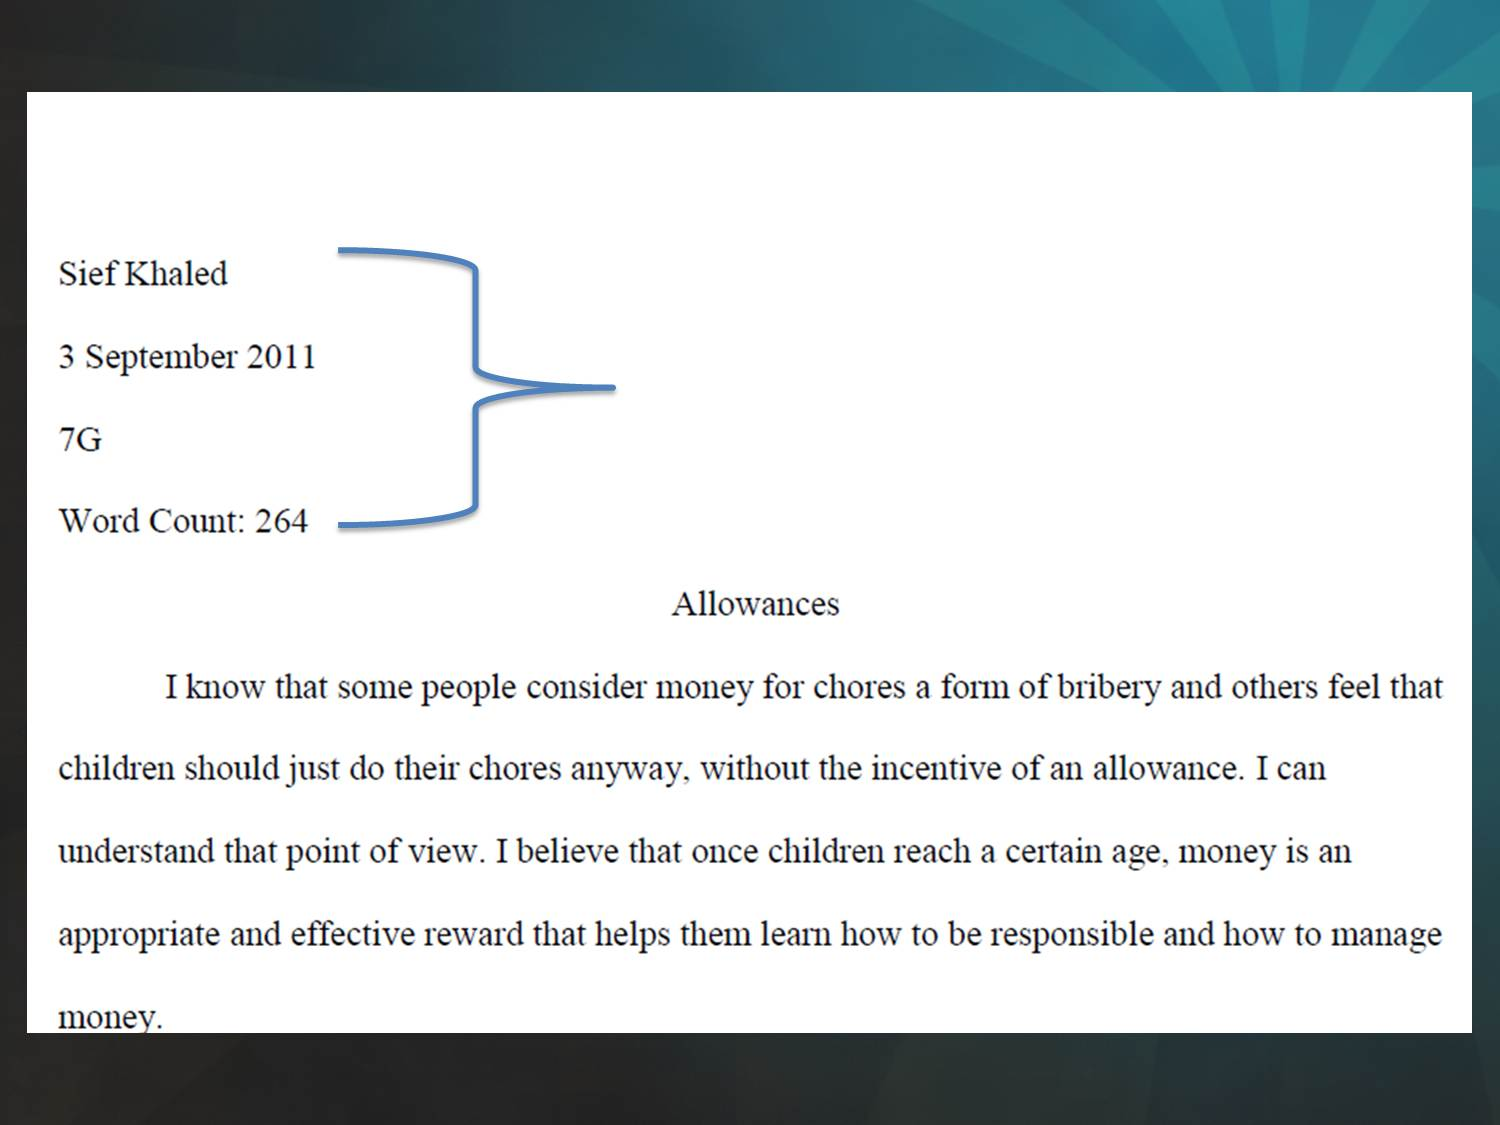 006 Picture2 Header For Essay Rare Application Apa Full